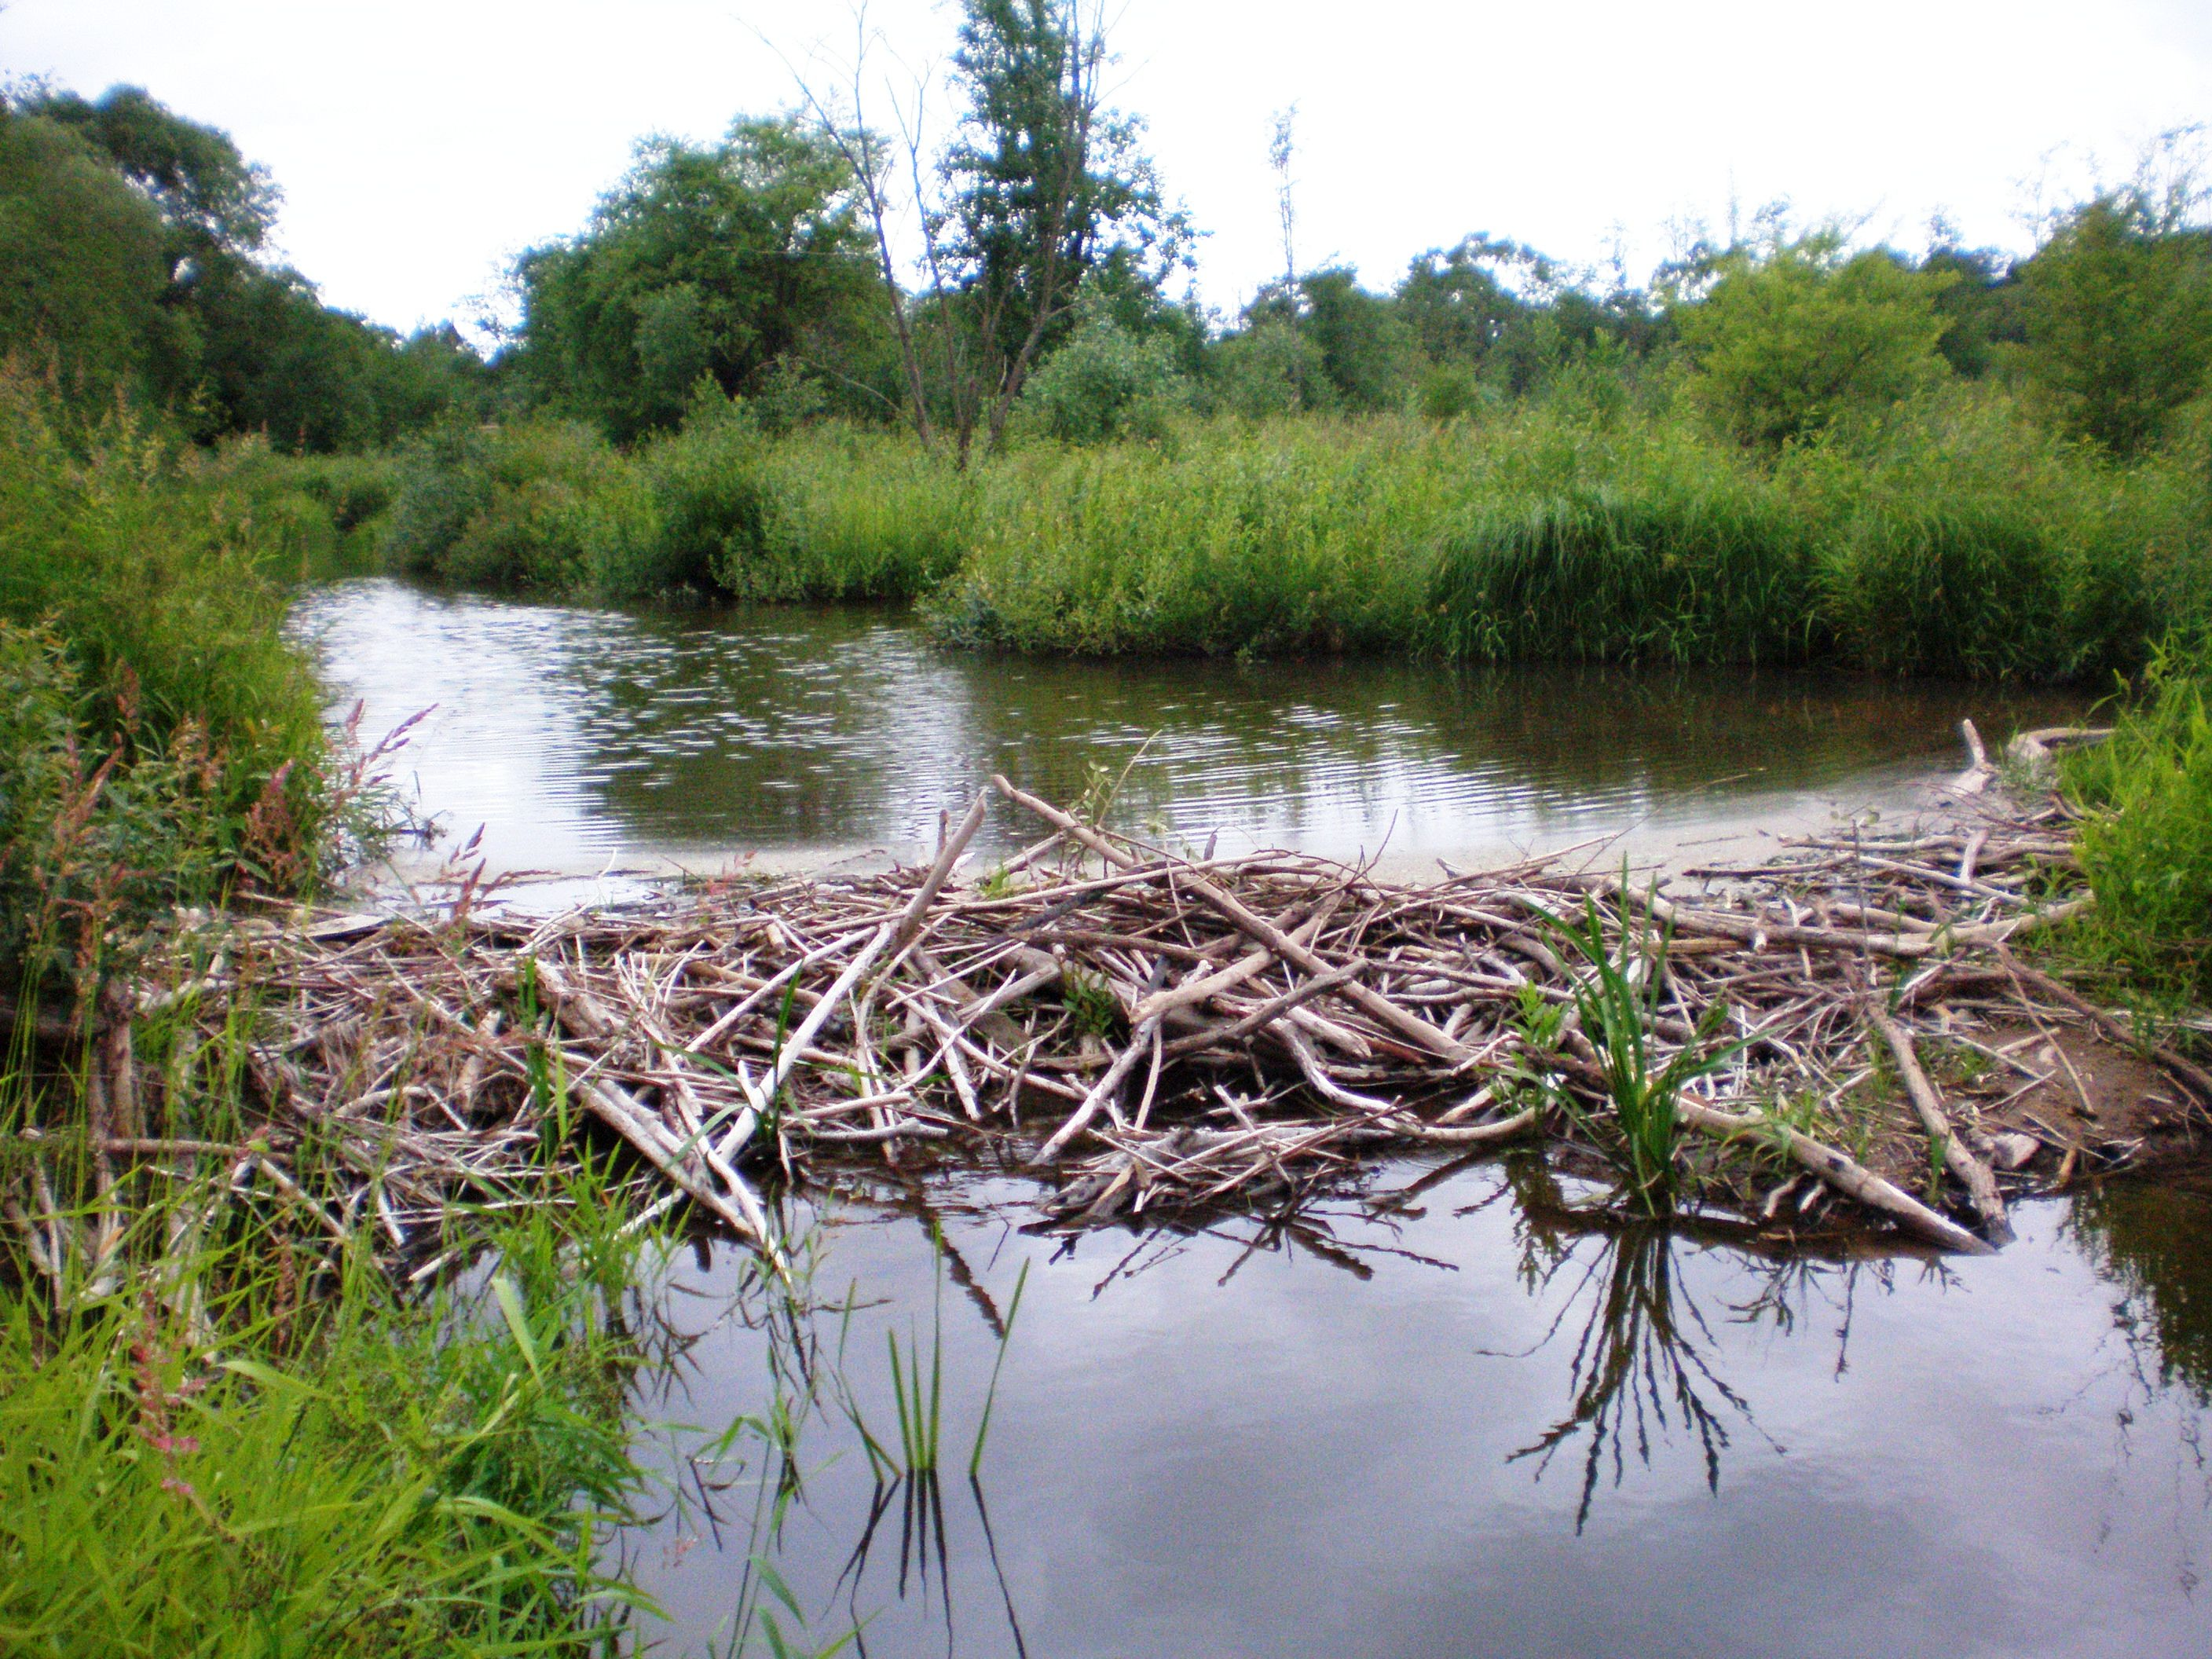 file beaver dam on smilga jpg wikimedia commons Wood Dam file beaver dam on smilga jpg